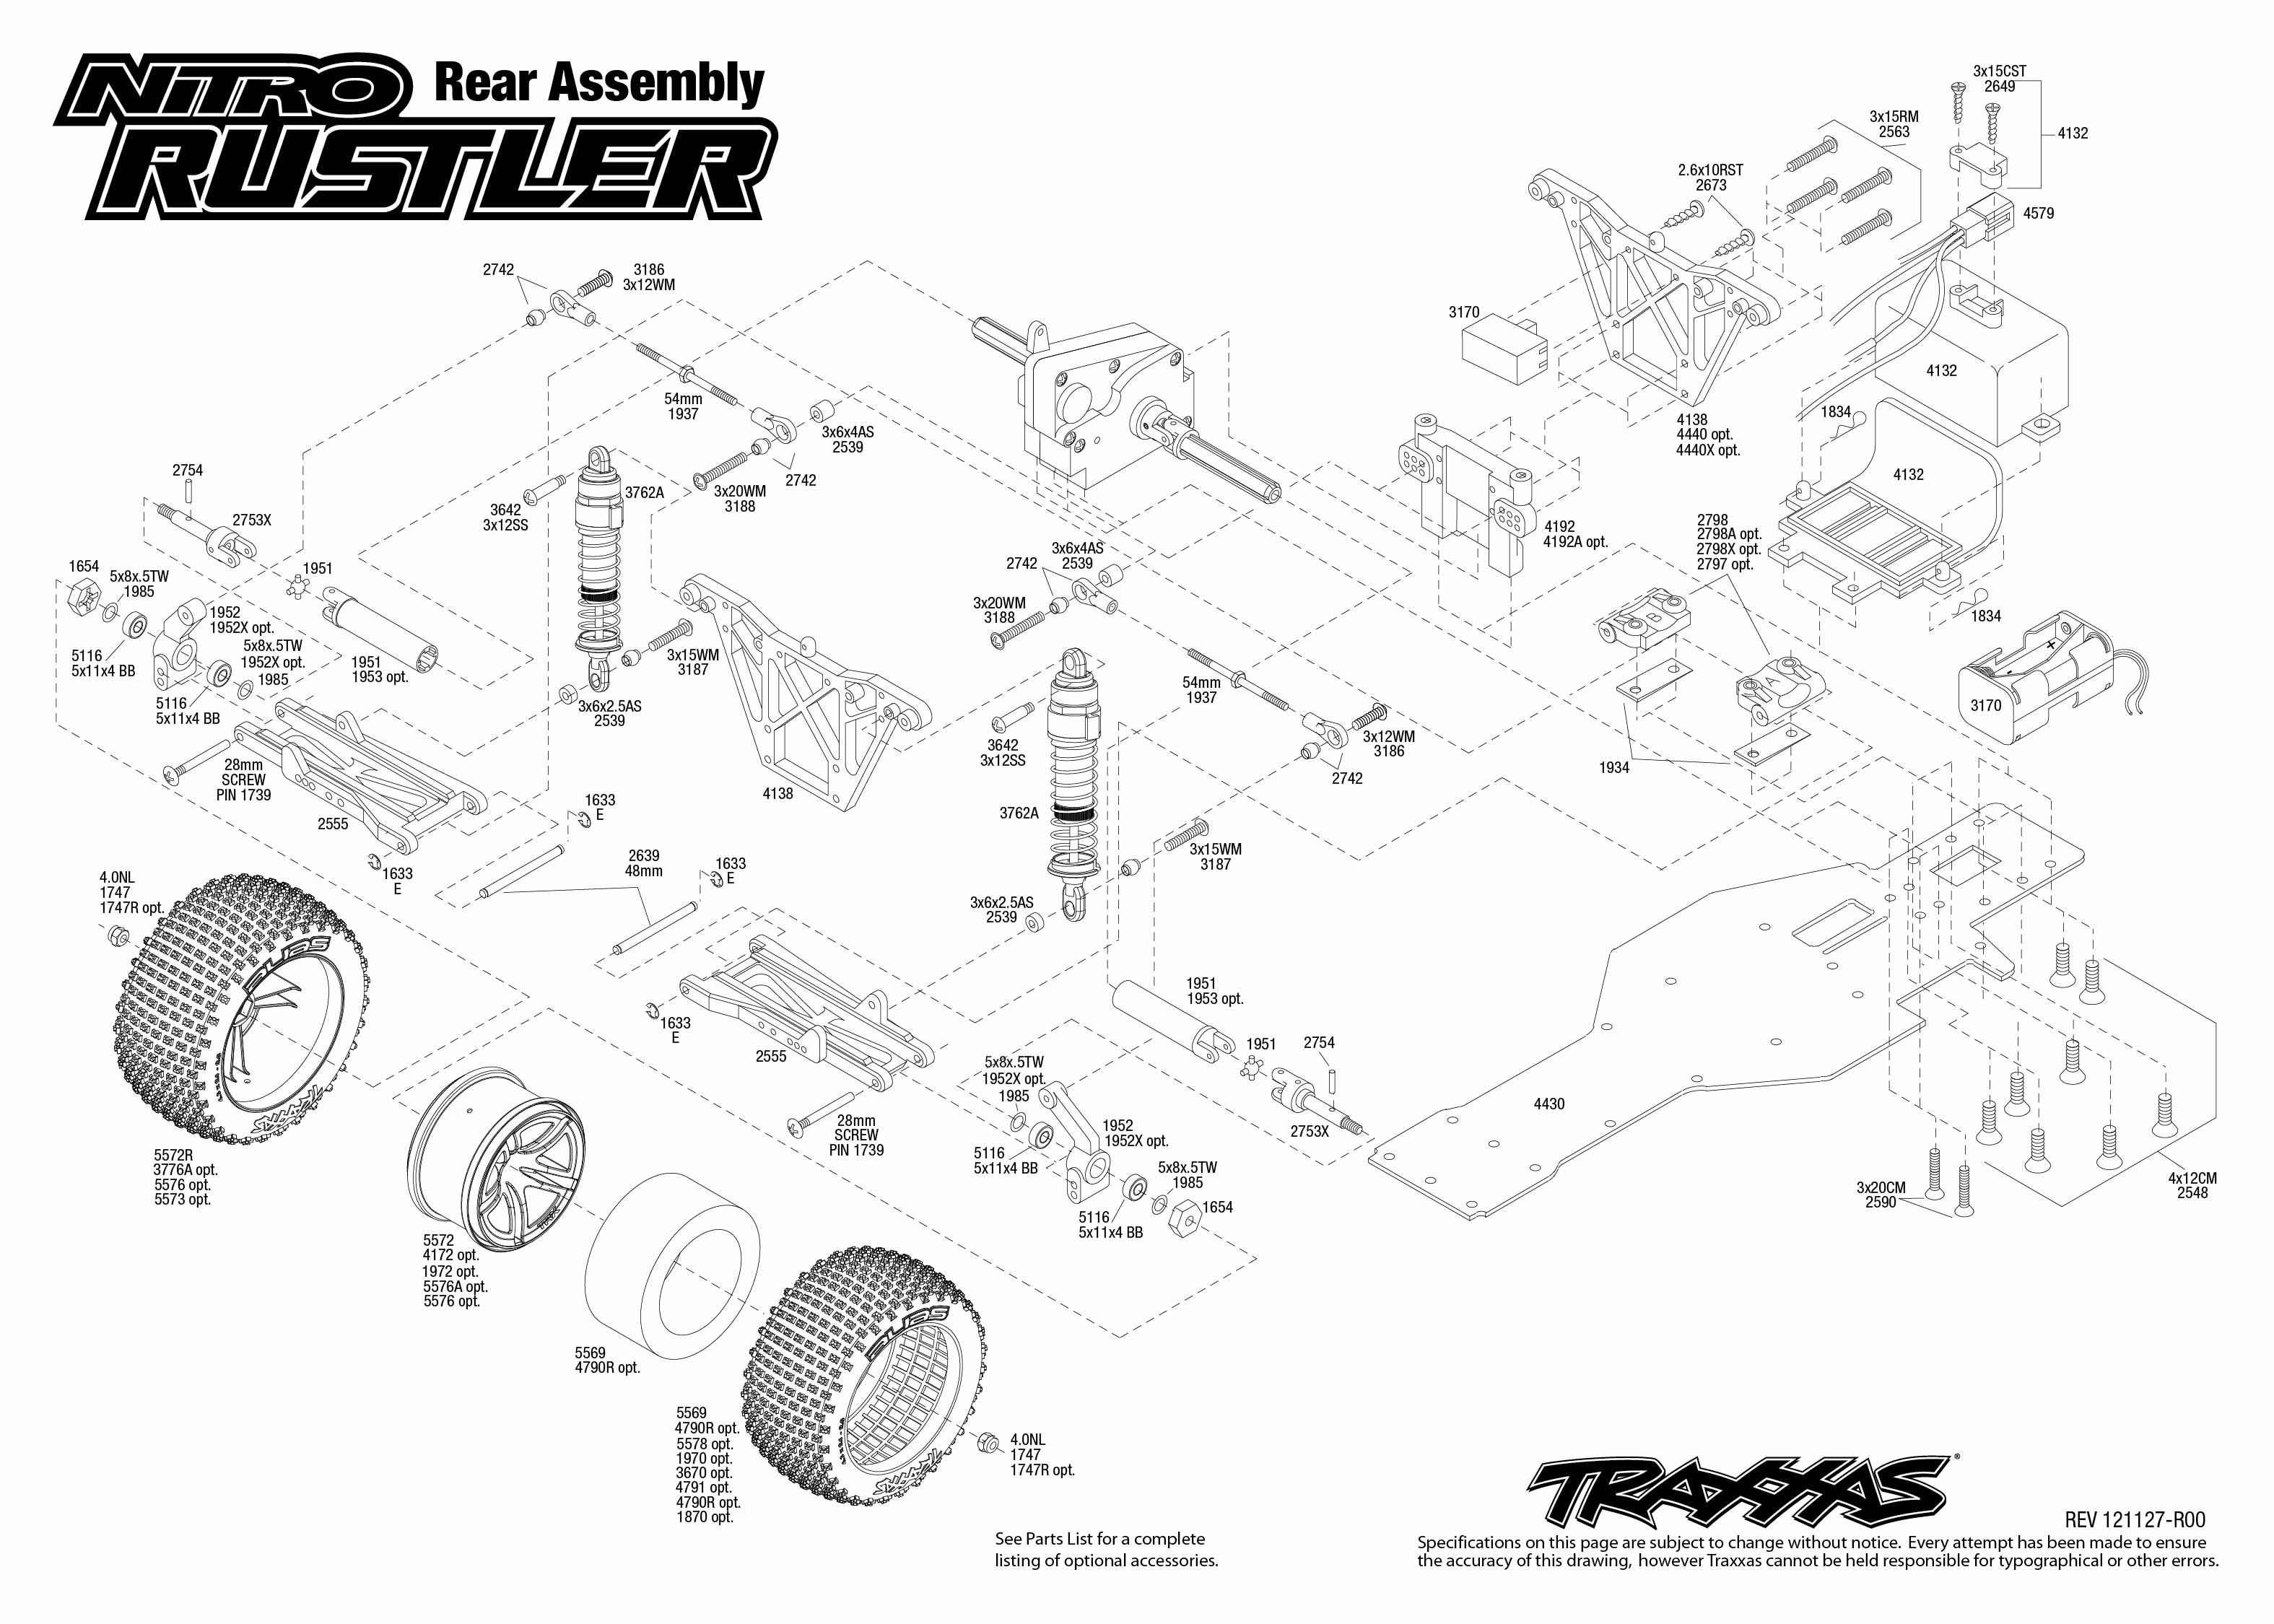 Traxxas Rustler Vxl Transmission Parts 1 10 Scale Slash 4x4 Brushless Short Course Truck 6808l List Wiring Diagrams U2022 Rh Autonomia Co Manual